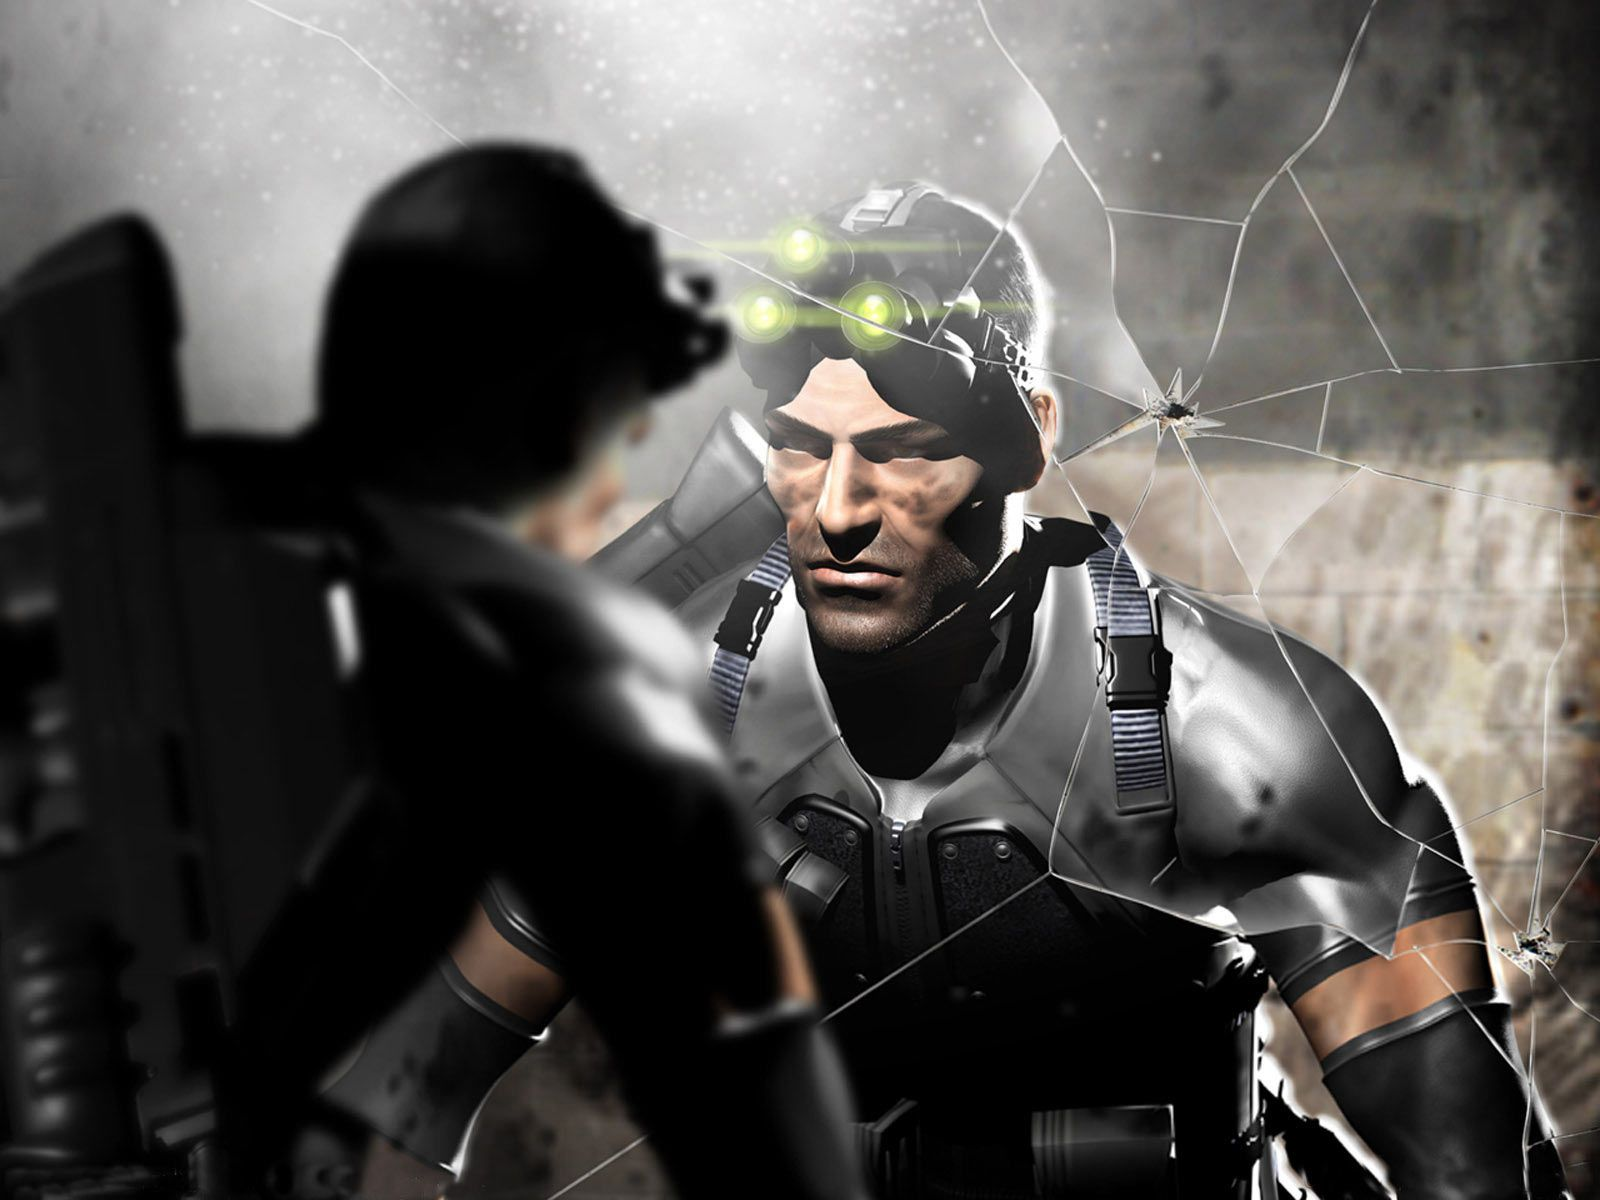 splinter cell movie updates: rating & tom hardy's approach | collider